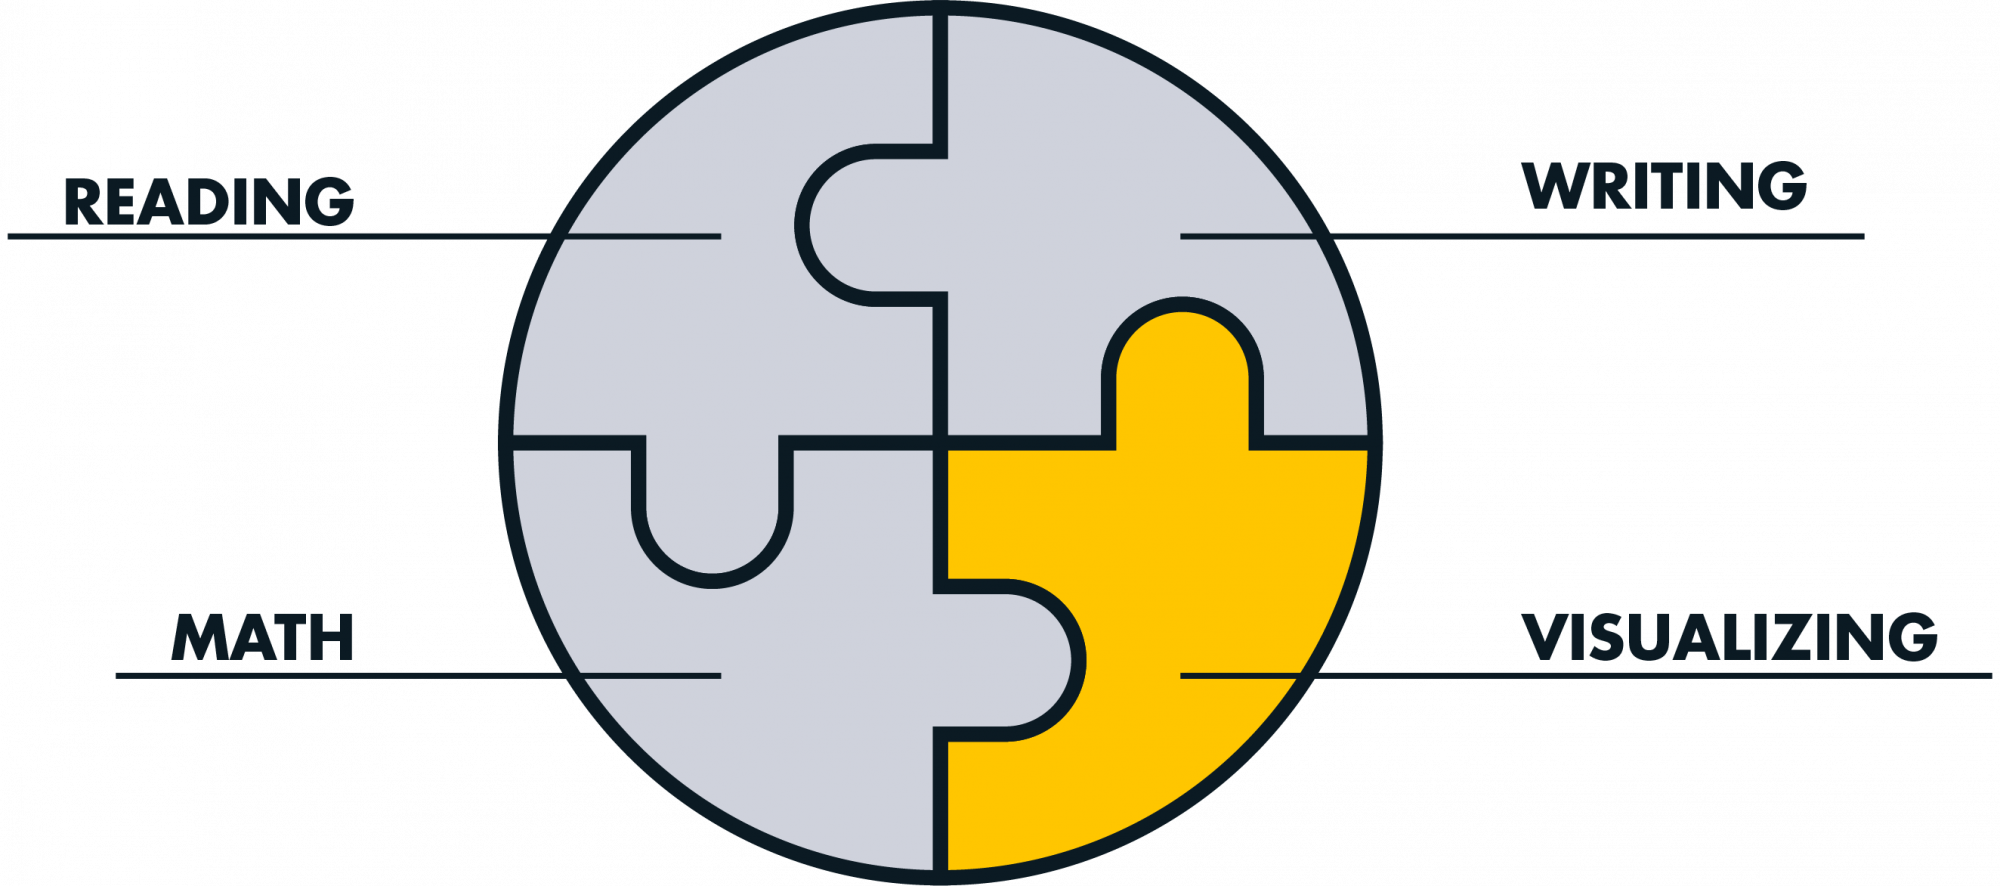 Circular puzzle with four pieces. Three grey sections labeled reading, math, and writing. One yellow section labeled visualizing.